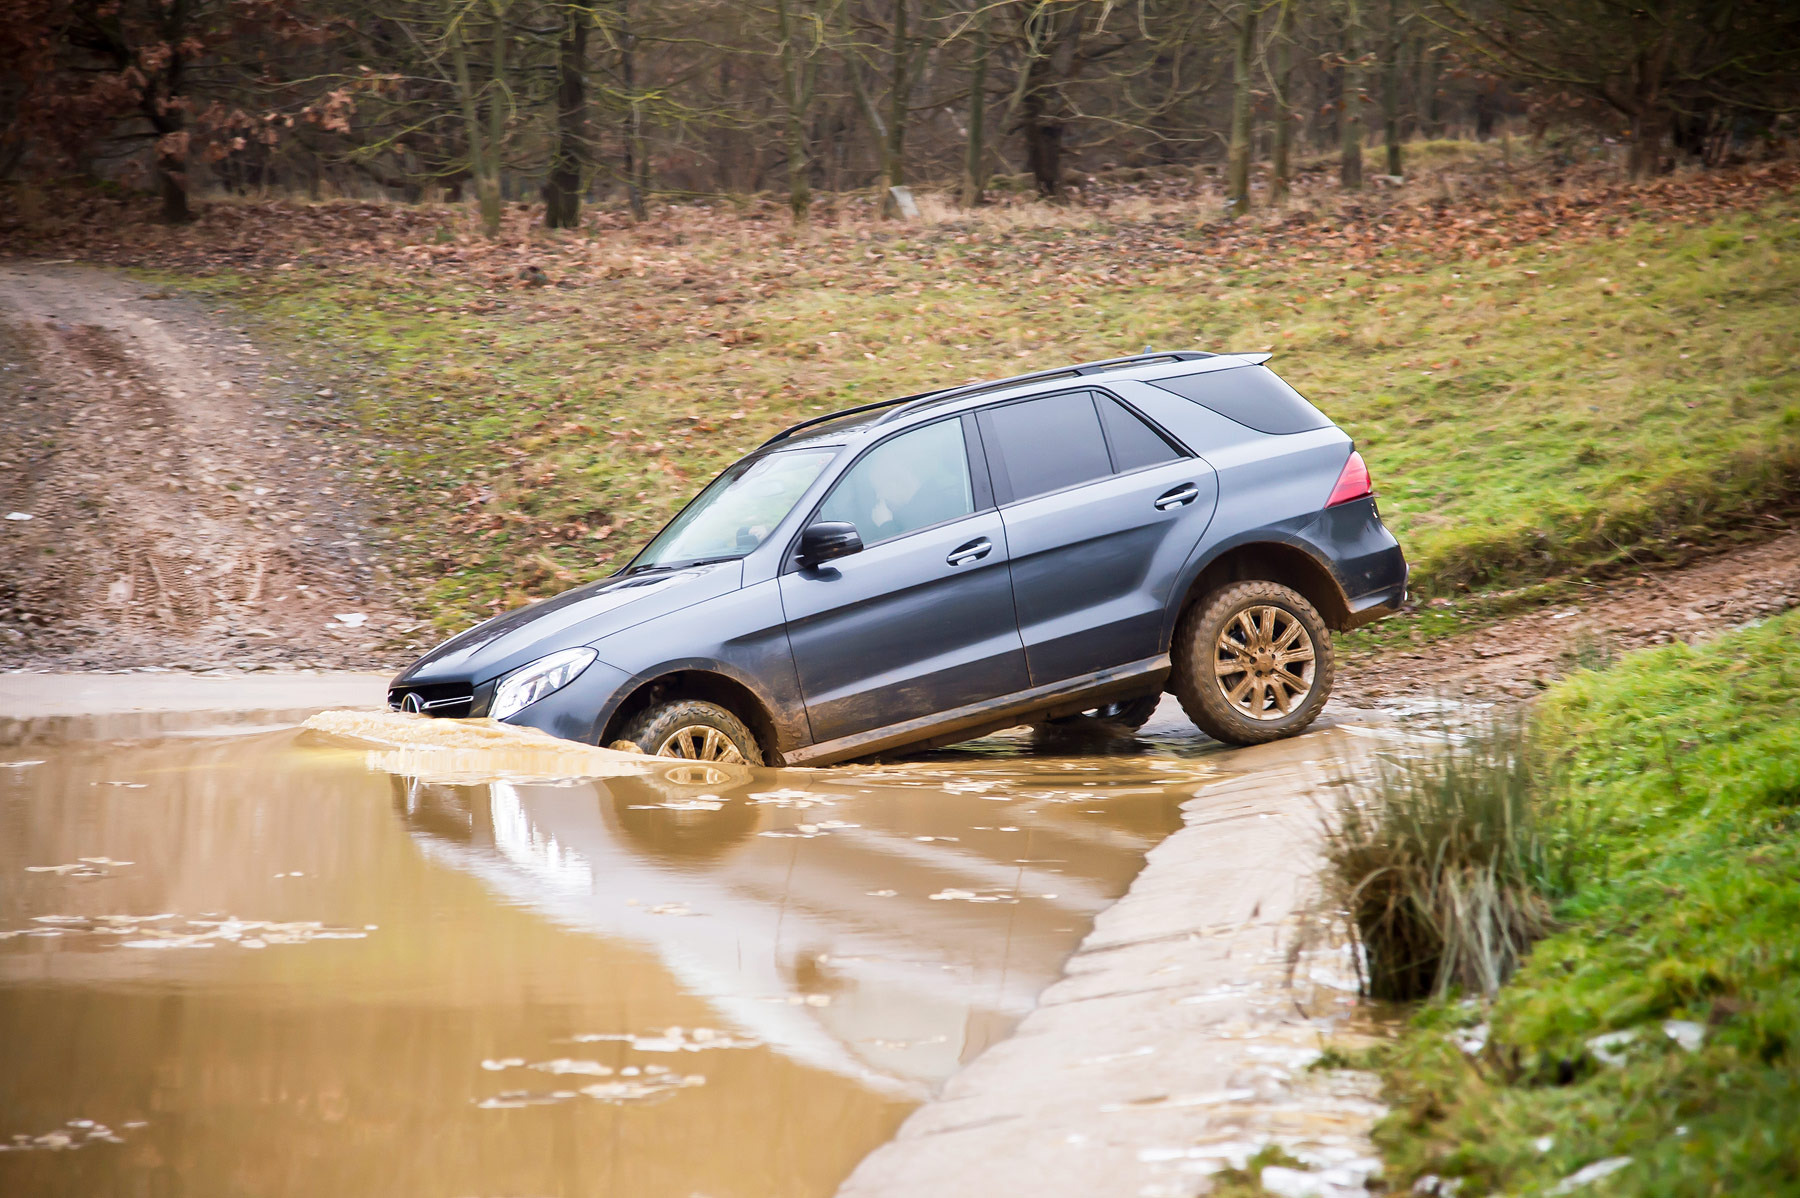 Mercedes-Benz SUV G Class Off-Road Test At Millbrook Proving Ground 3